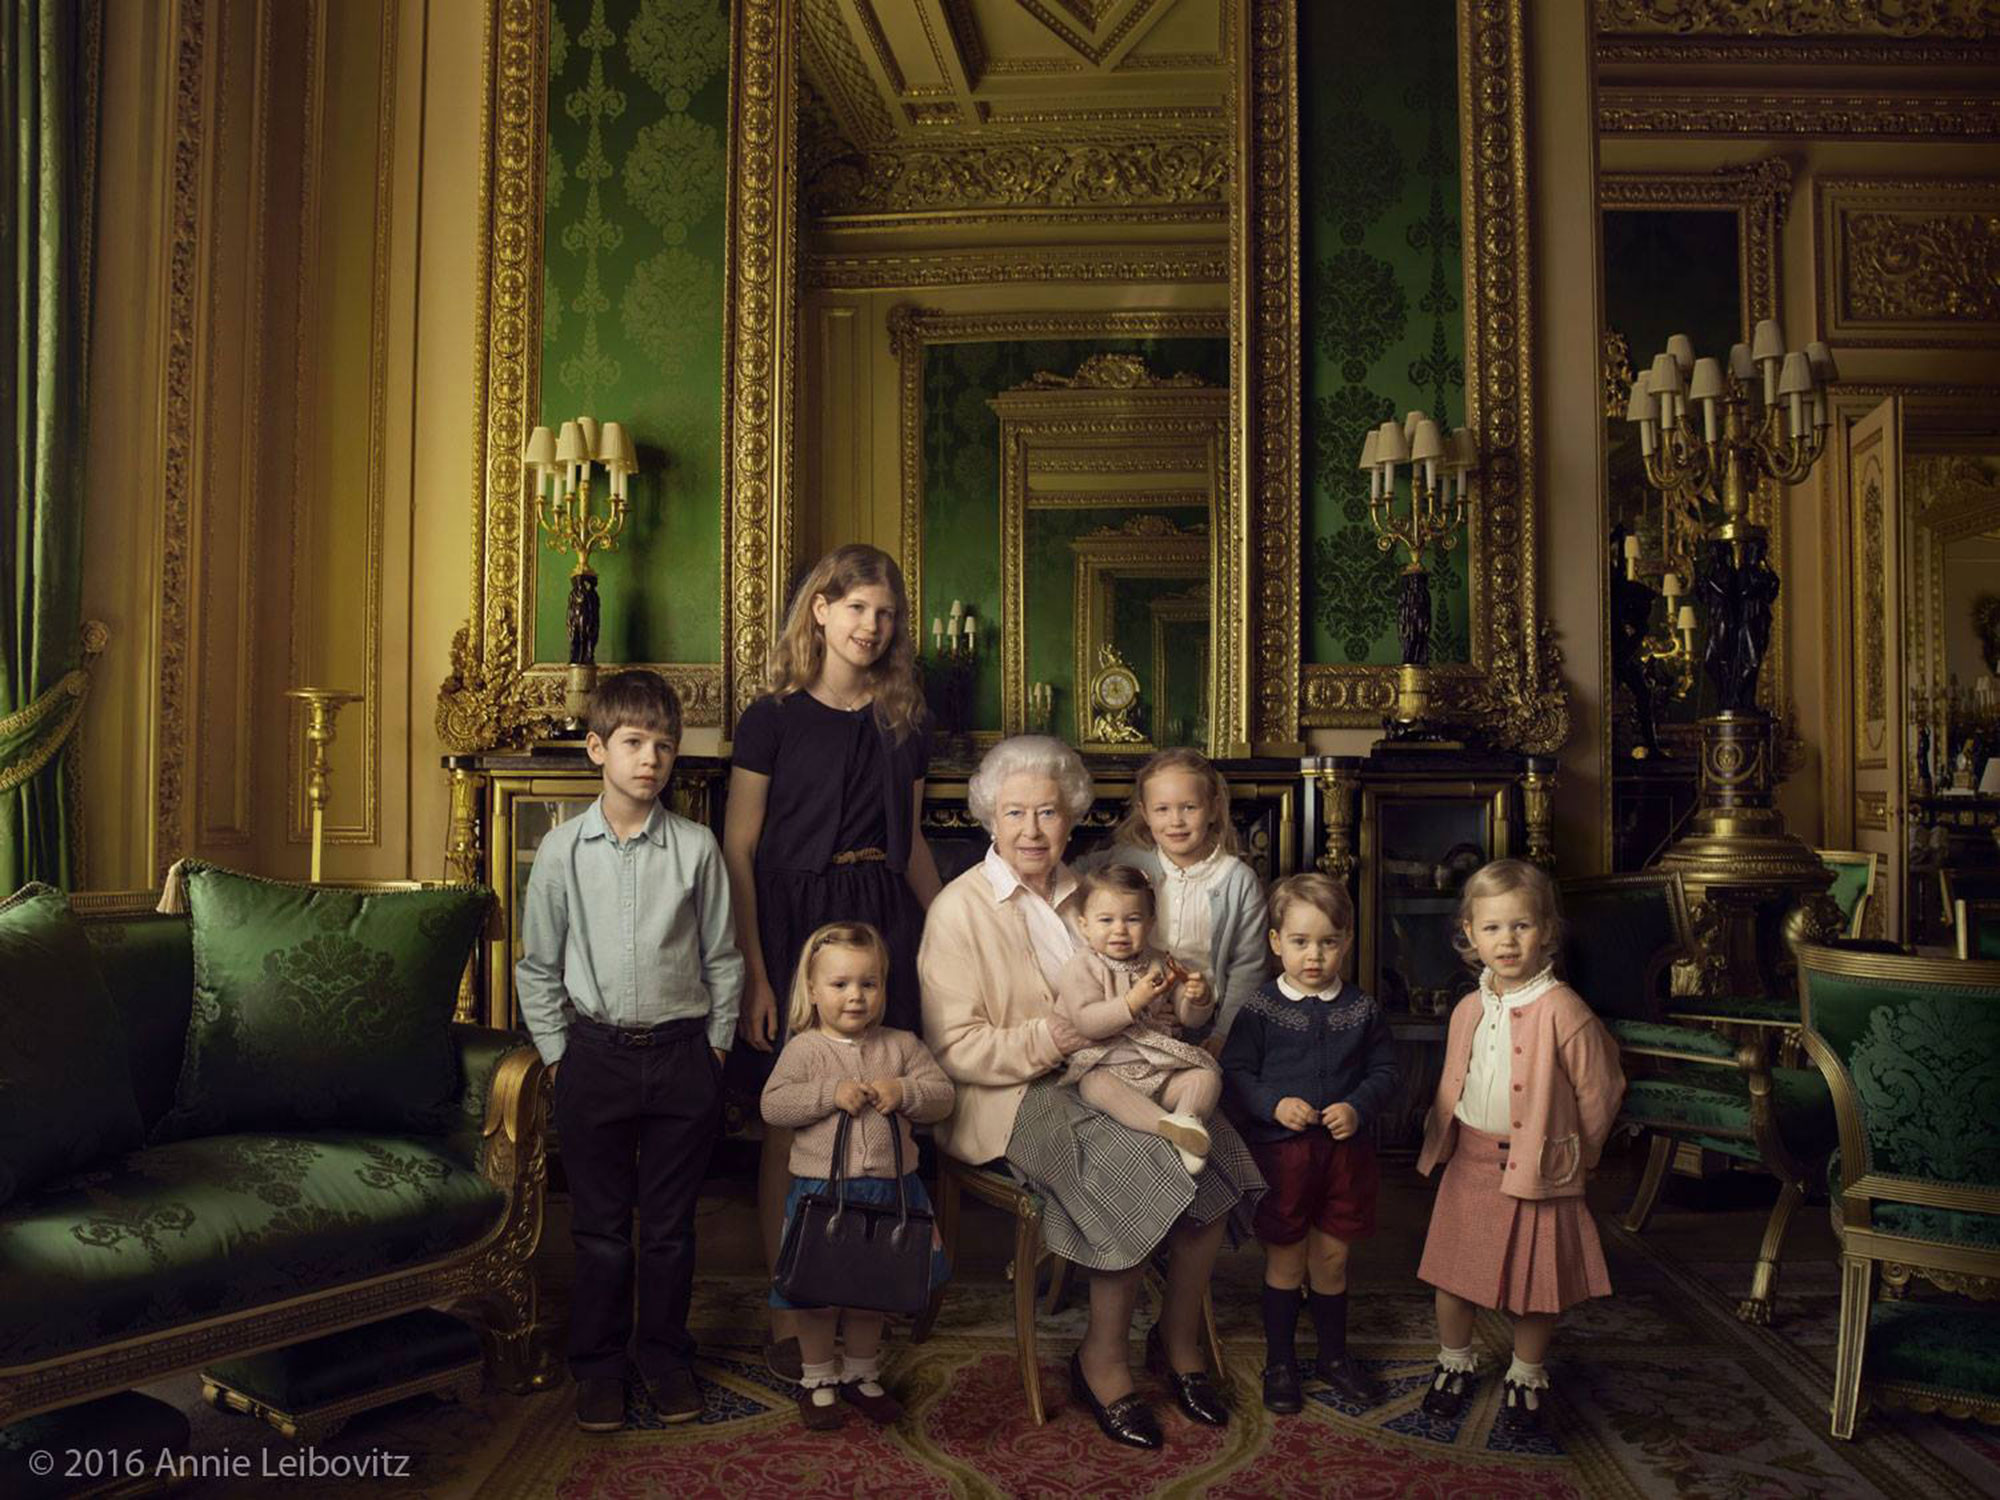 Princess Charlotte and the Queen Are Twinsies in Latest Royal Family Photo